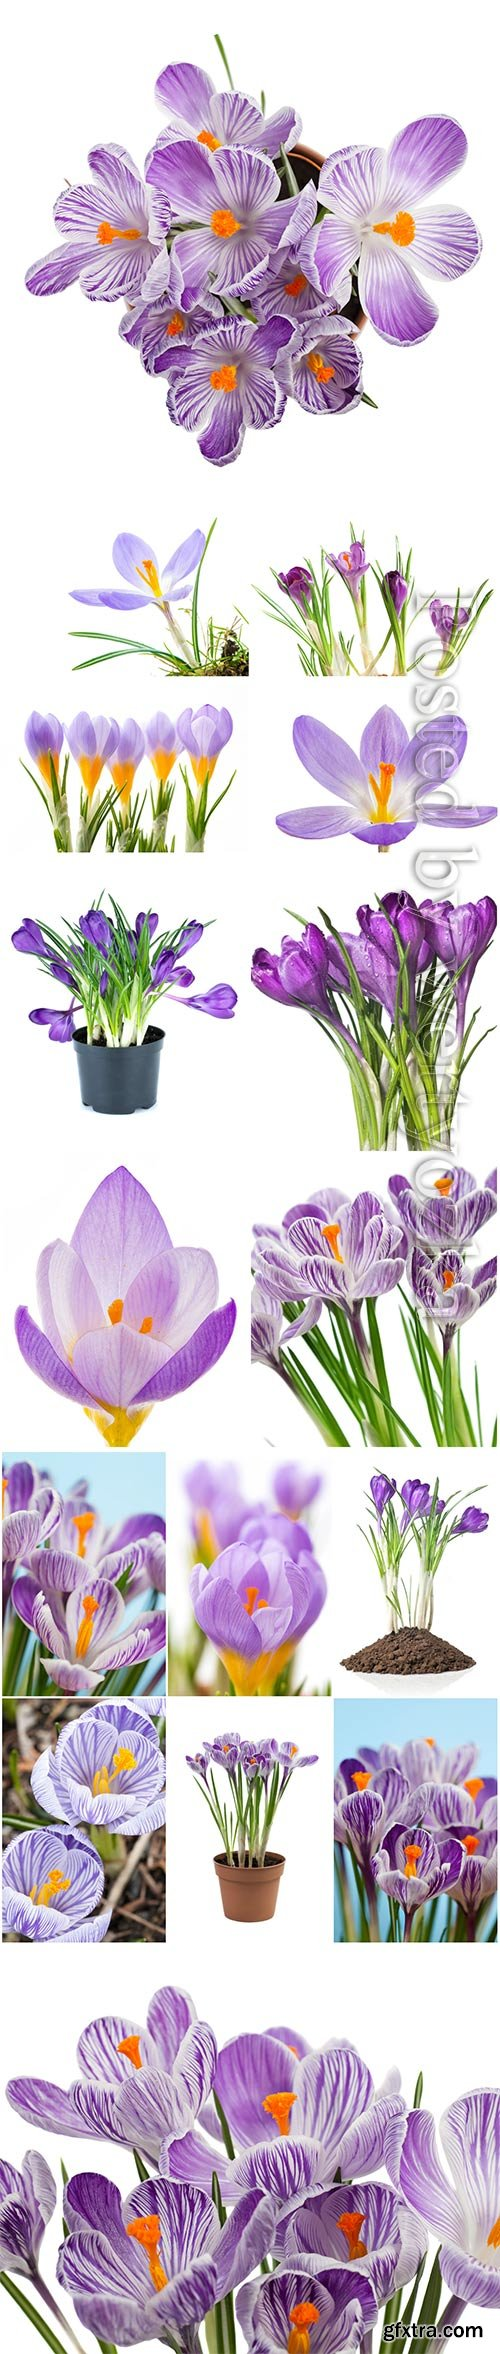 Beautiful crocuses stock photo